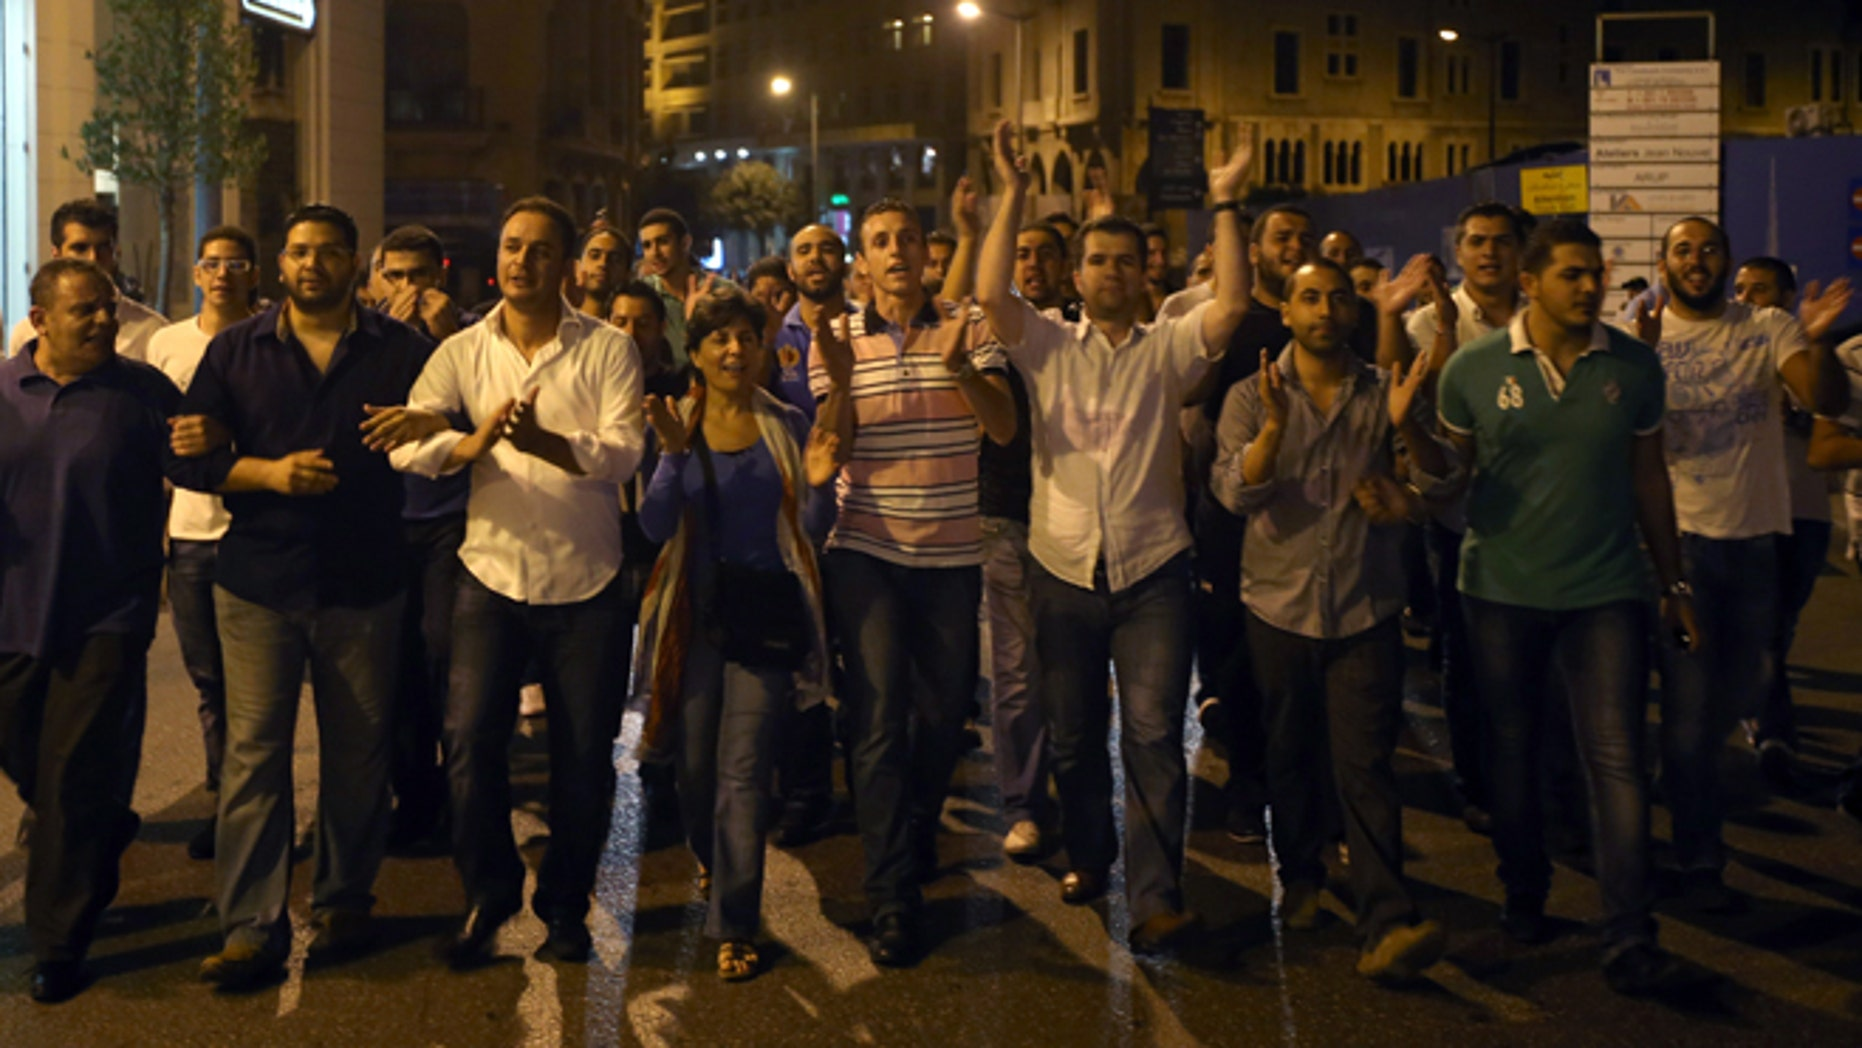 Oct. 19, 2012: Anti Lebanese government protesters, shout slogans against Lebanese Prime Minister Najib Mikati and against the Syrian regime, during a demonstration after the killing of Brig. Gen. Wissam al-Hassan, in downtown of Beirut, Lebanon.